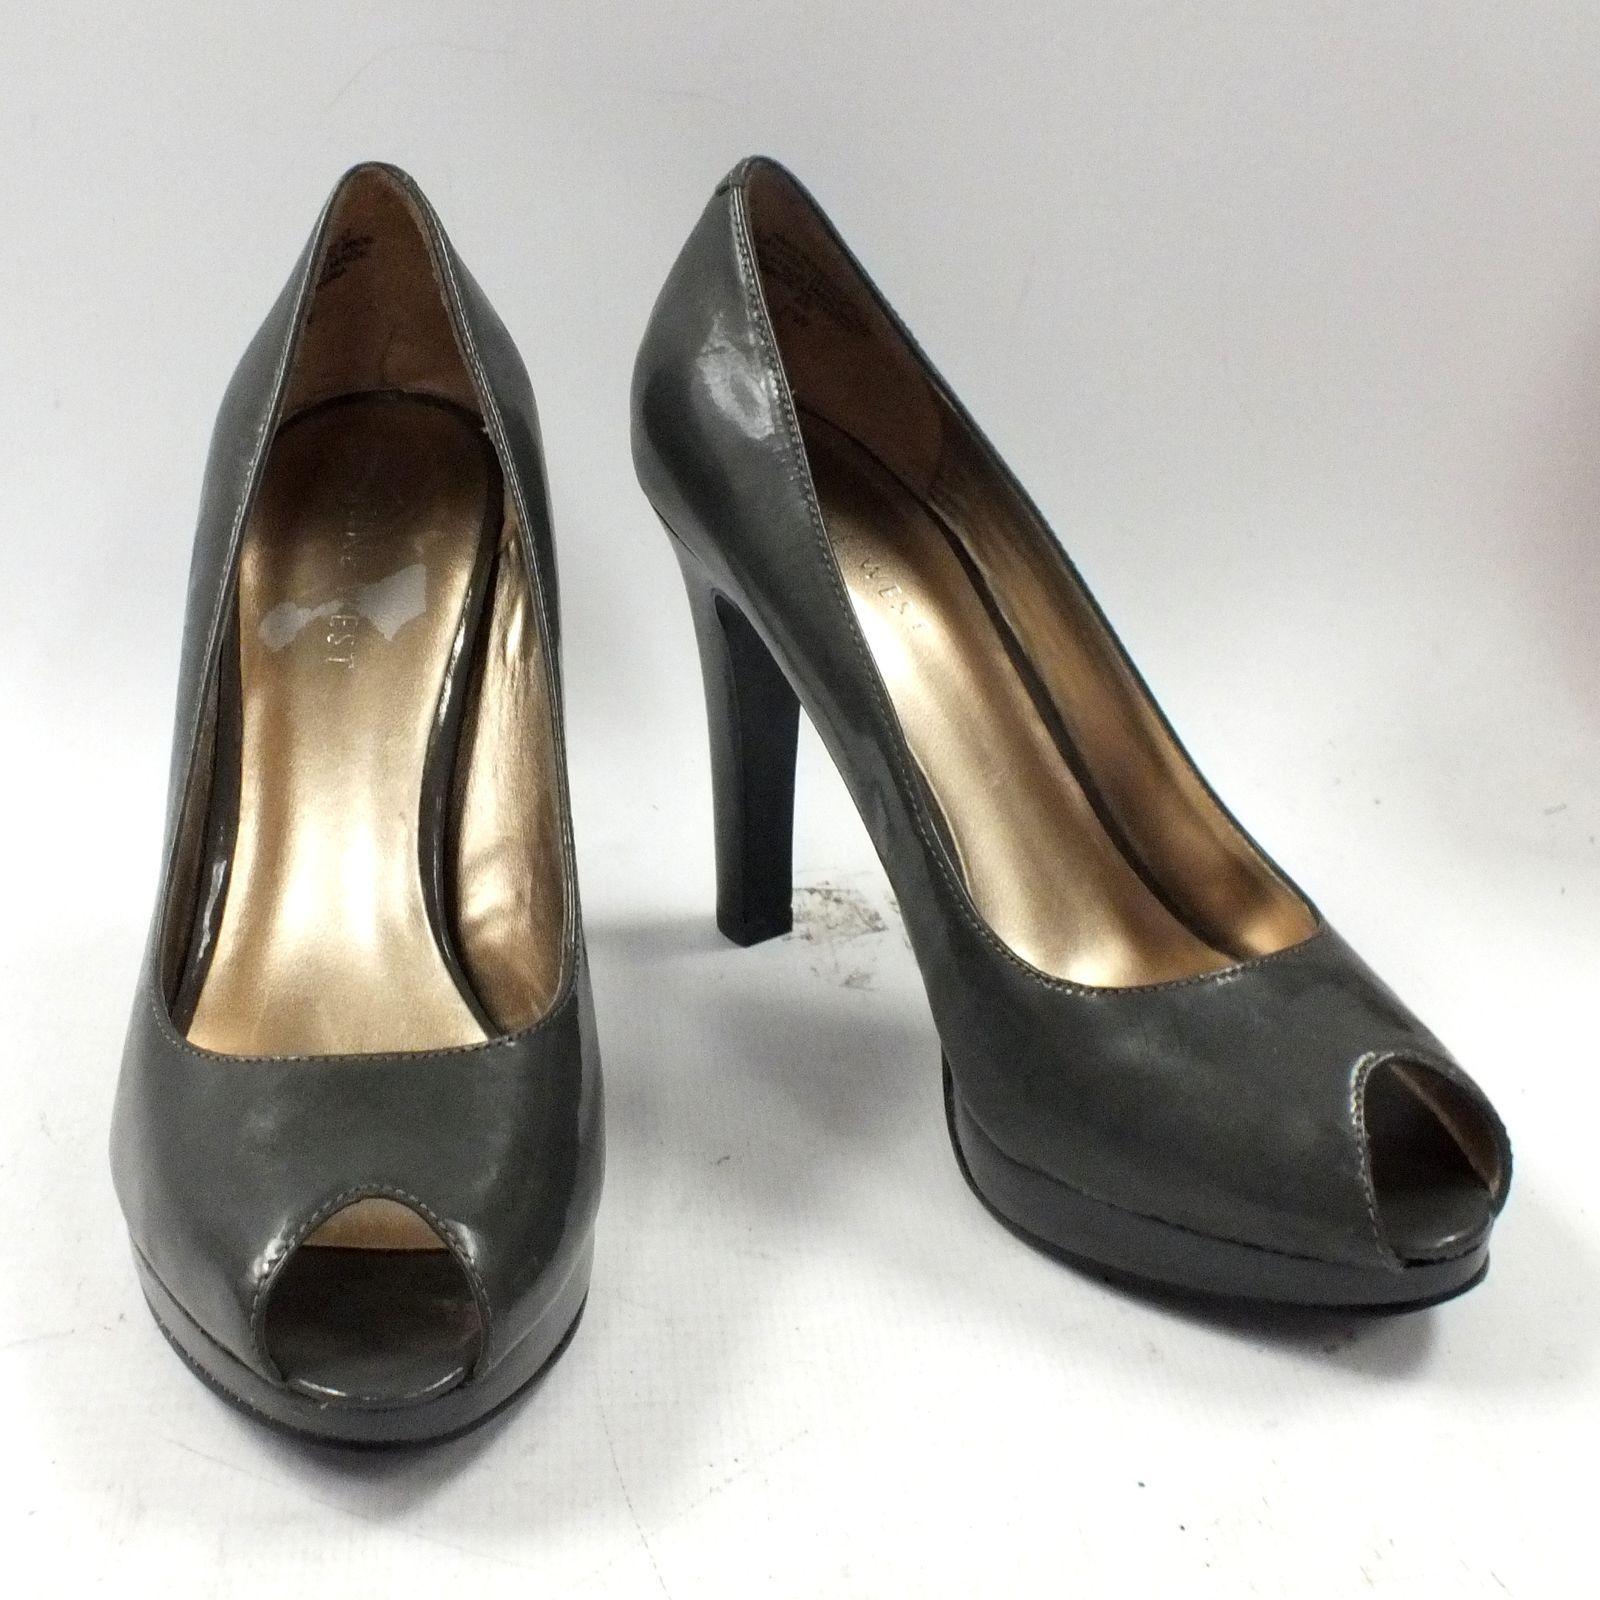 BNIB Ladies NINE WEST Peep Toe Dark Grey Francisco High Heel Shoes, UK Size 5